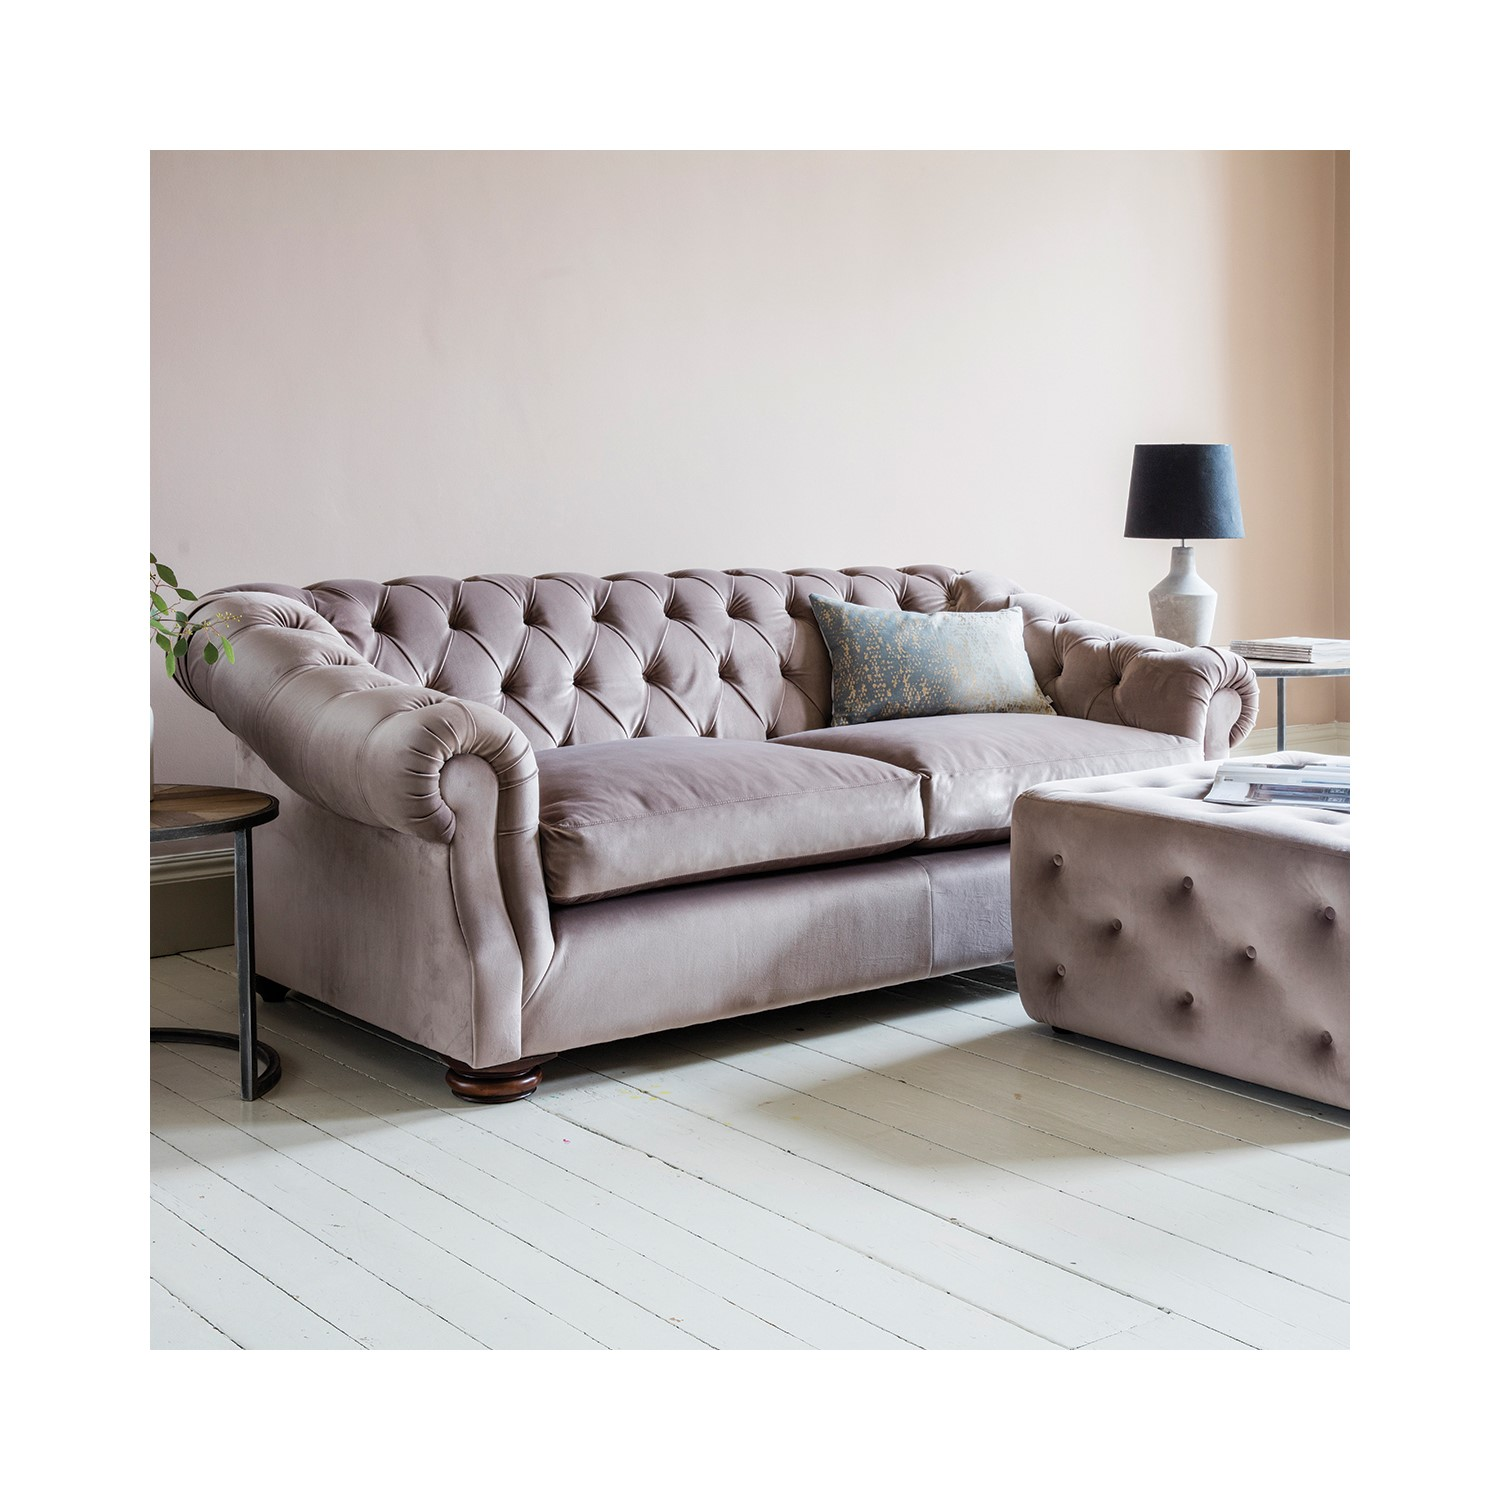 Genial Gallery Hampton Chesterfield Sofa In Upholstery Fabric   Brussels Taupe